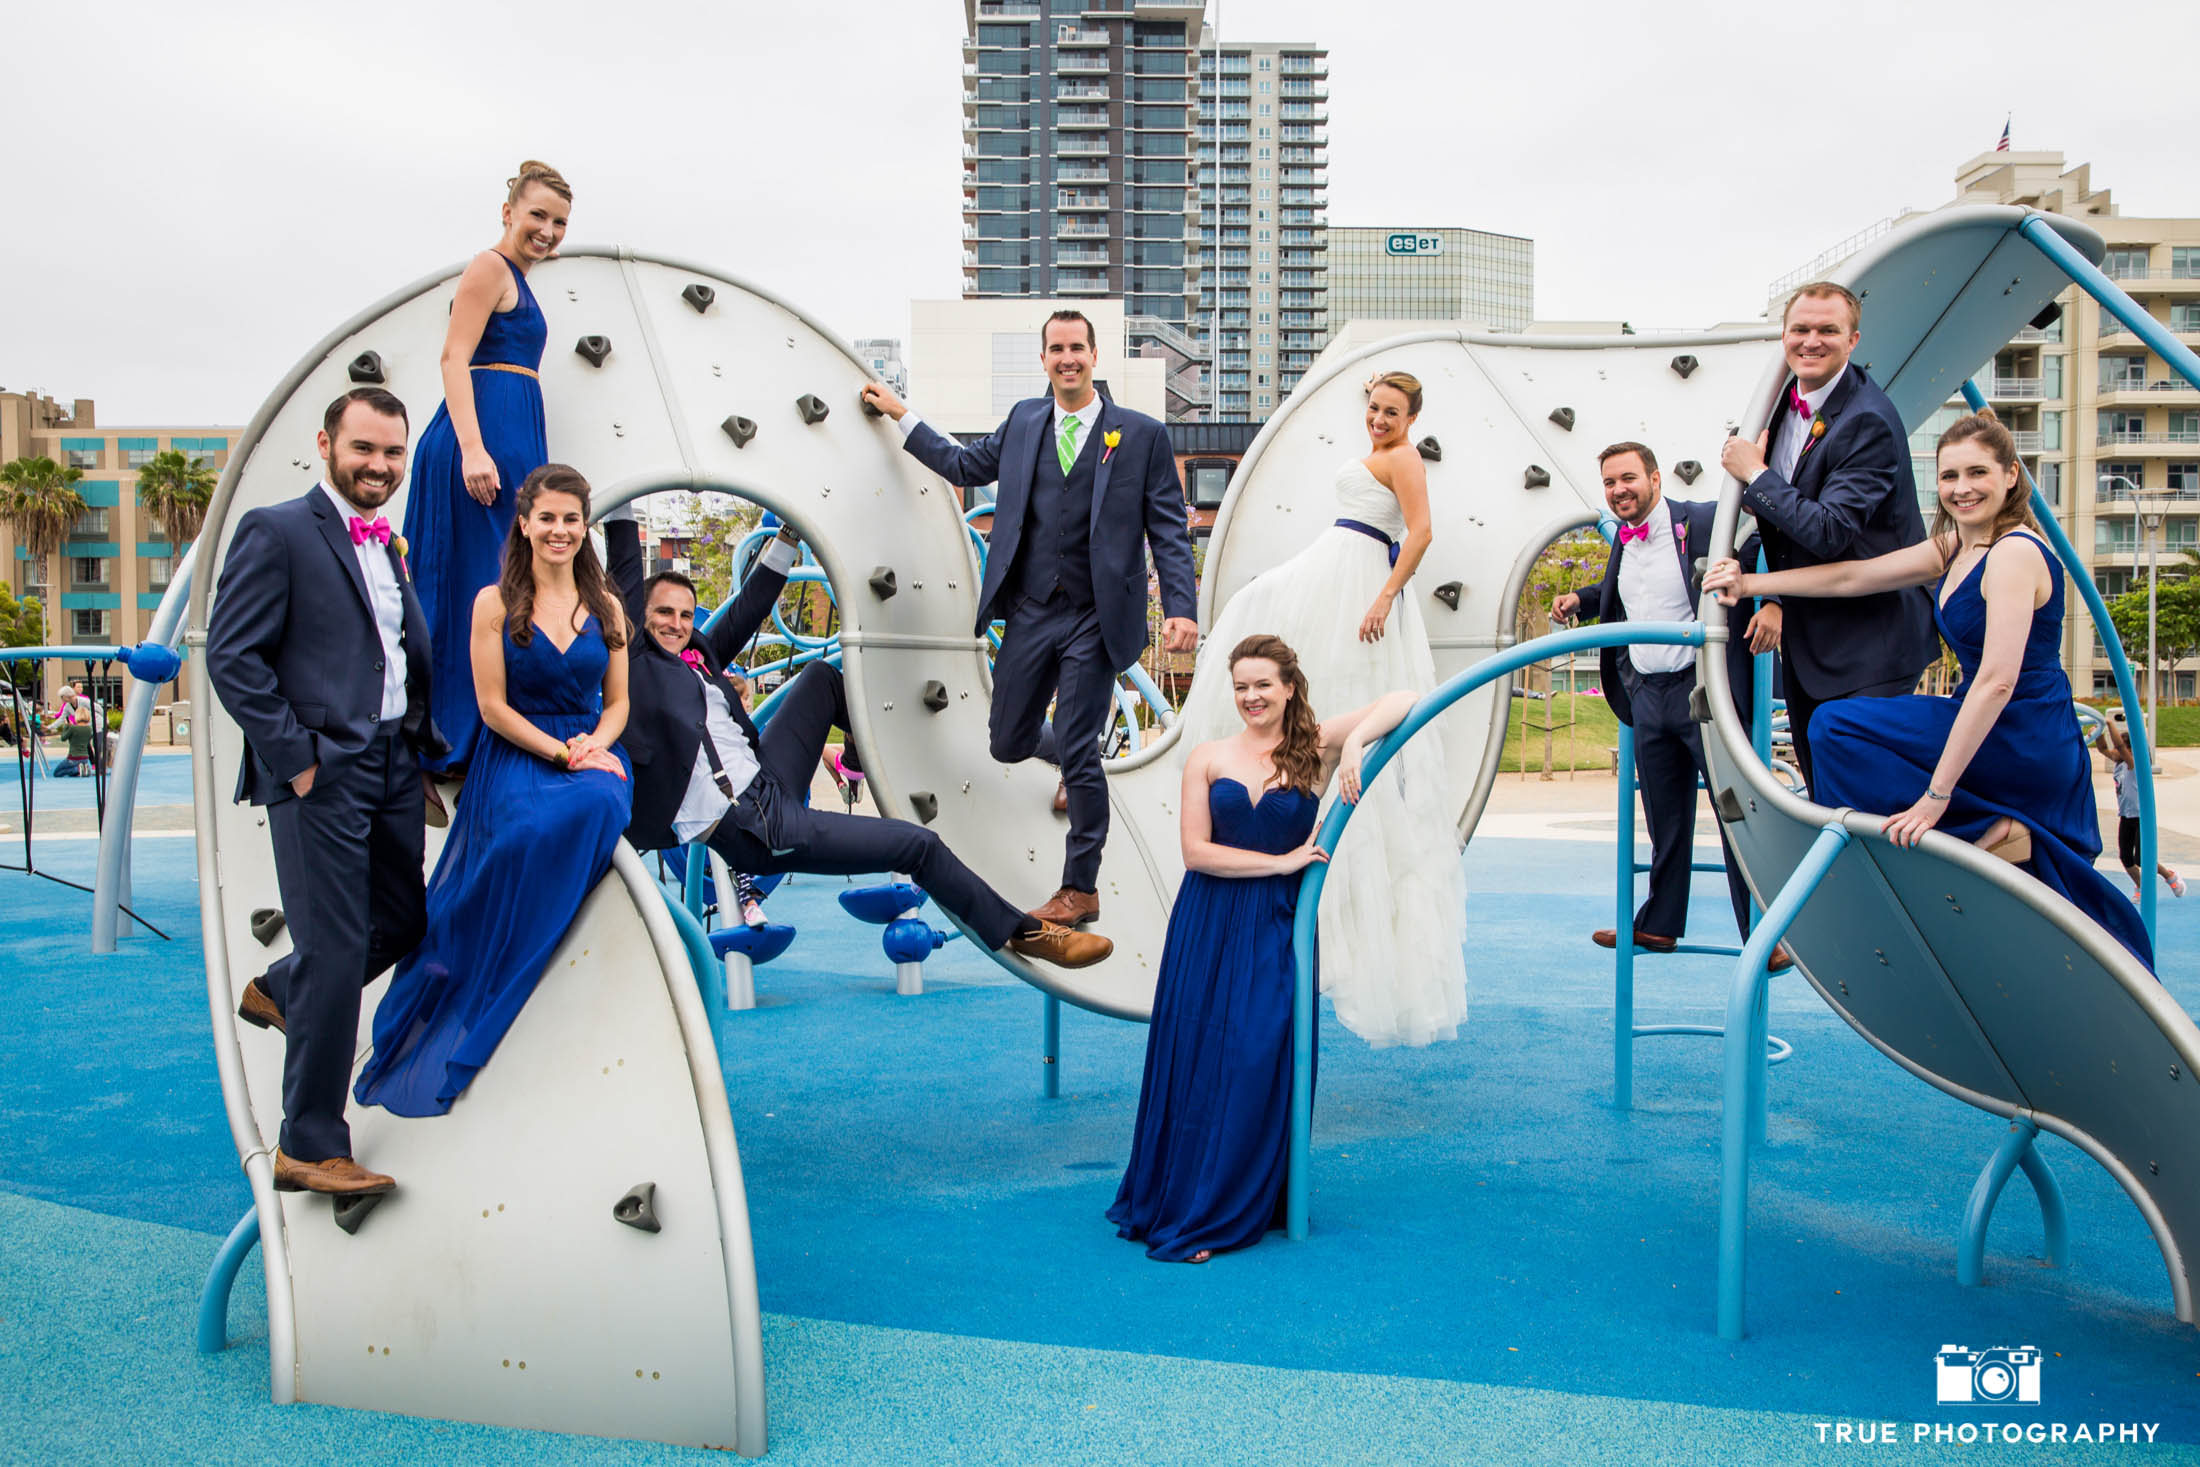 Outrageous wedding party having fun